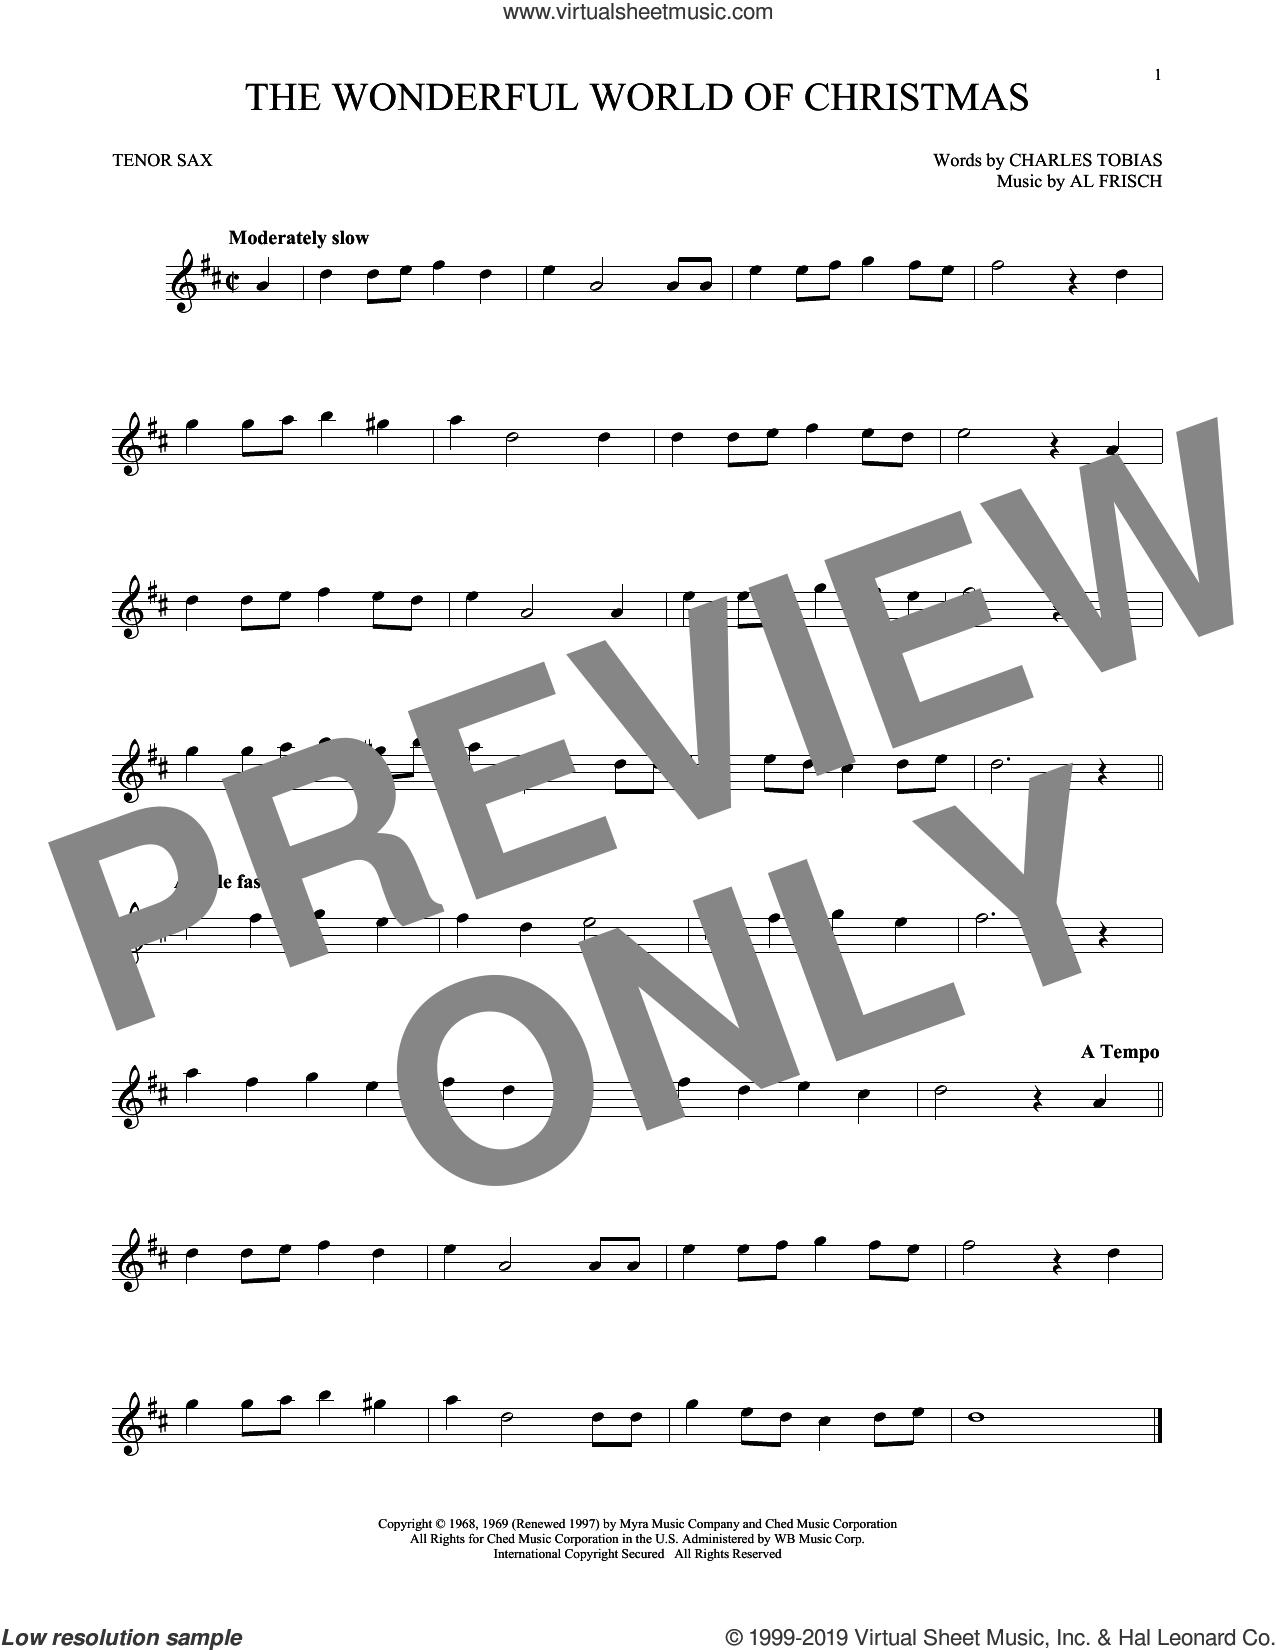 The Wonderful World Of Christmas sheet music for tenor saxophone solo by Elvis Presley, Al Frisch and Charles Tobias, intermediate skill level